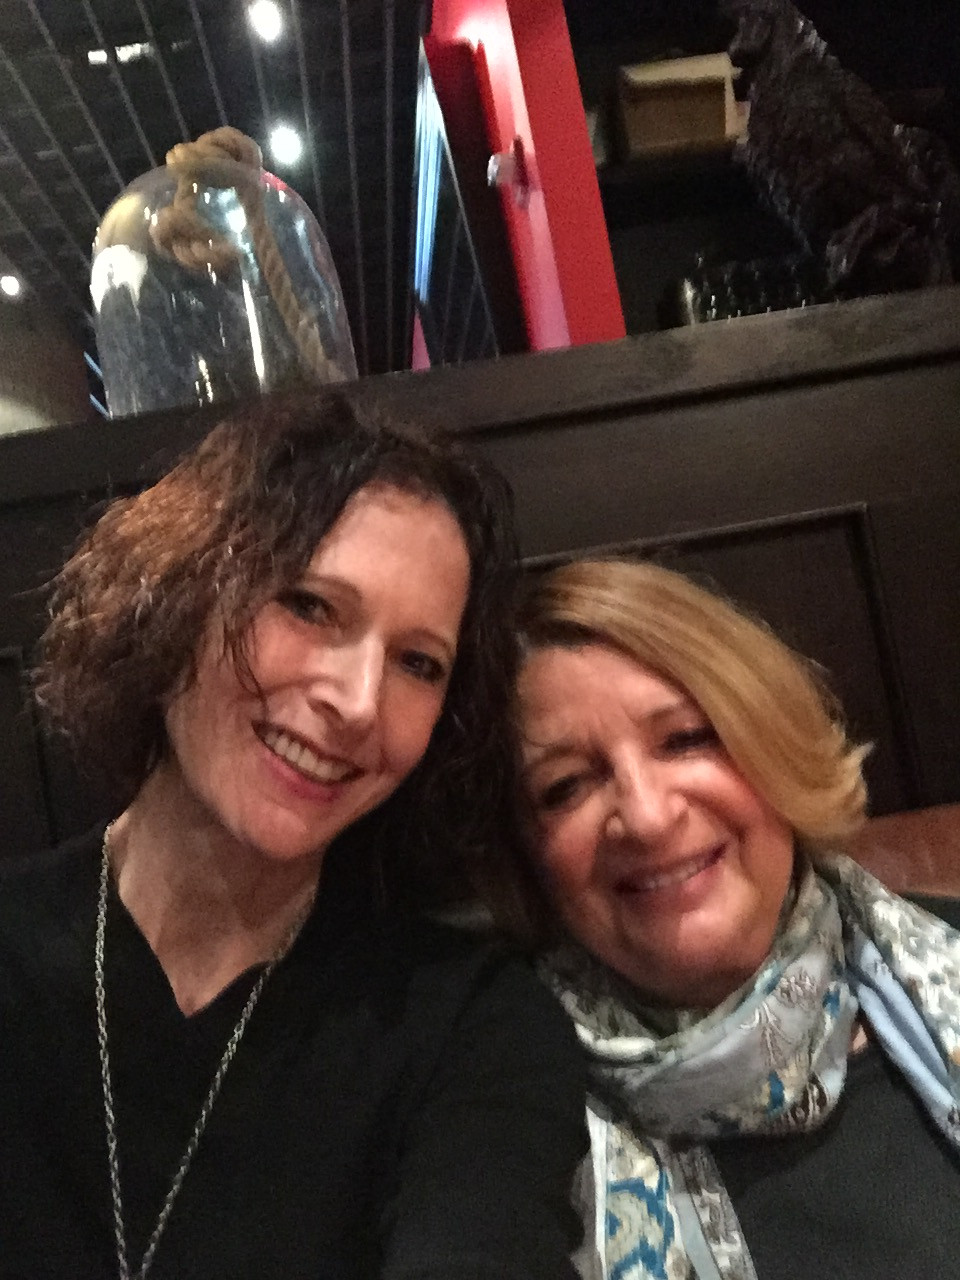 The author and Nancy, celebrating their friendship at Casa Nonna